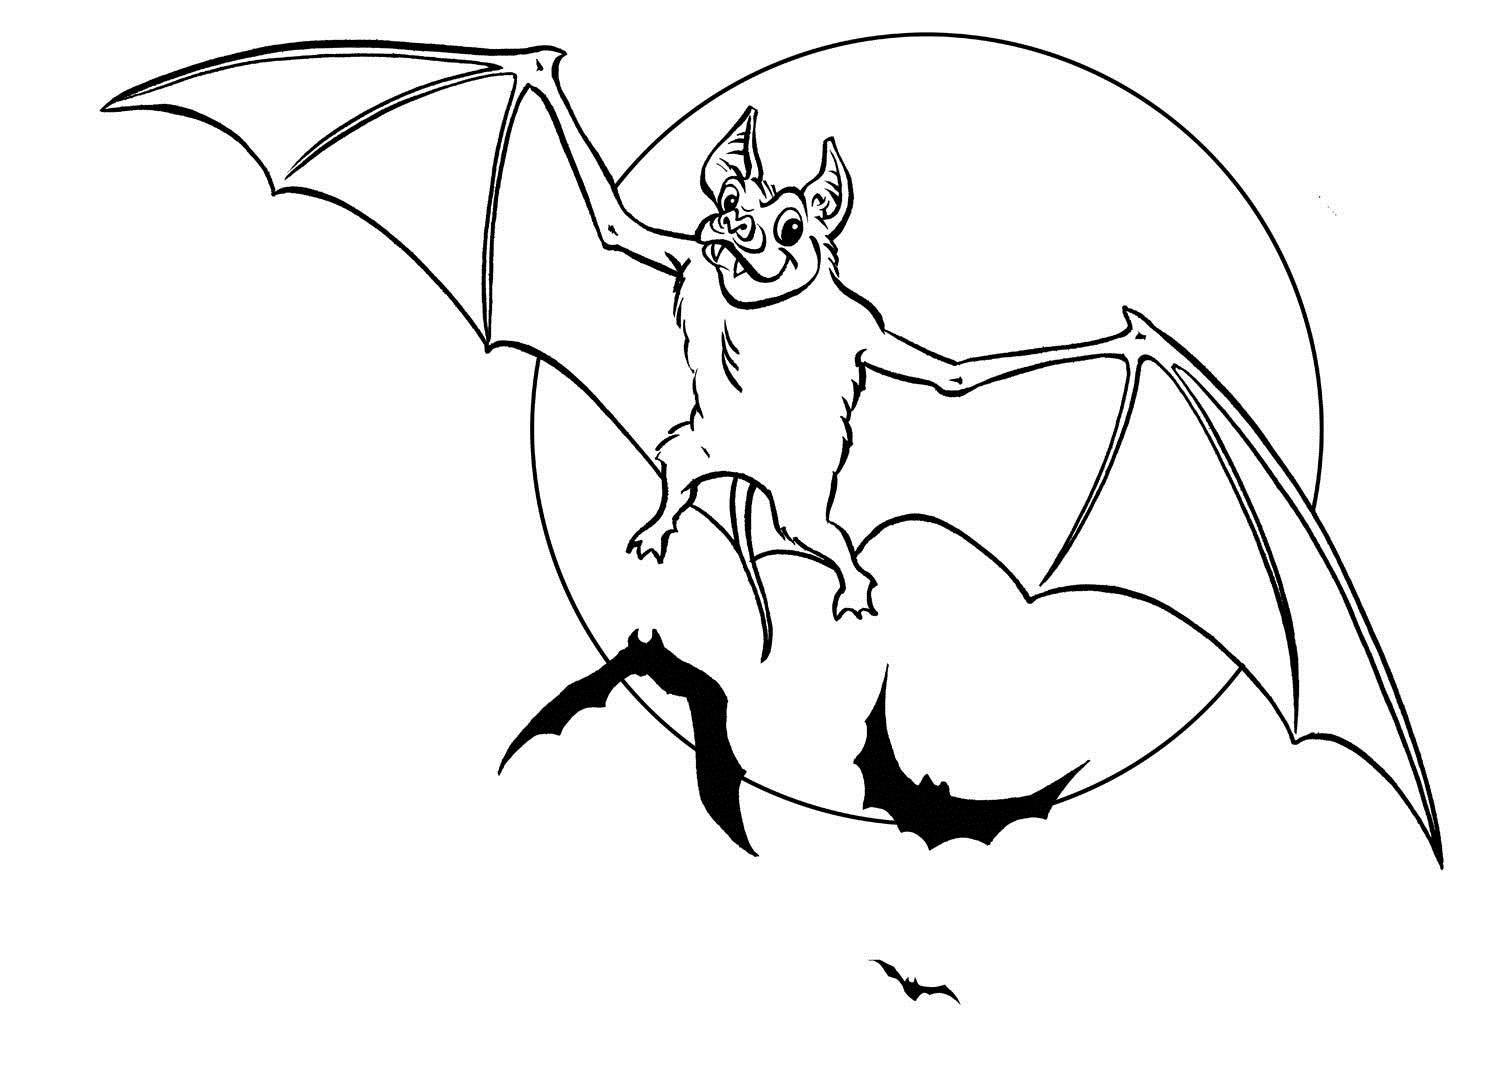 Free coloring pages for halloween - Halloween Bat Coloring Pages